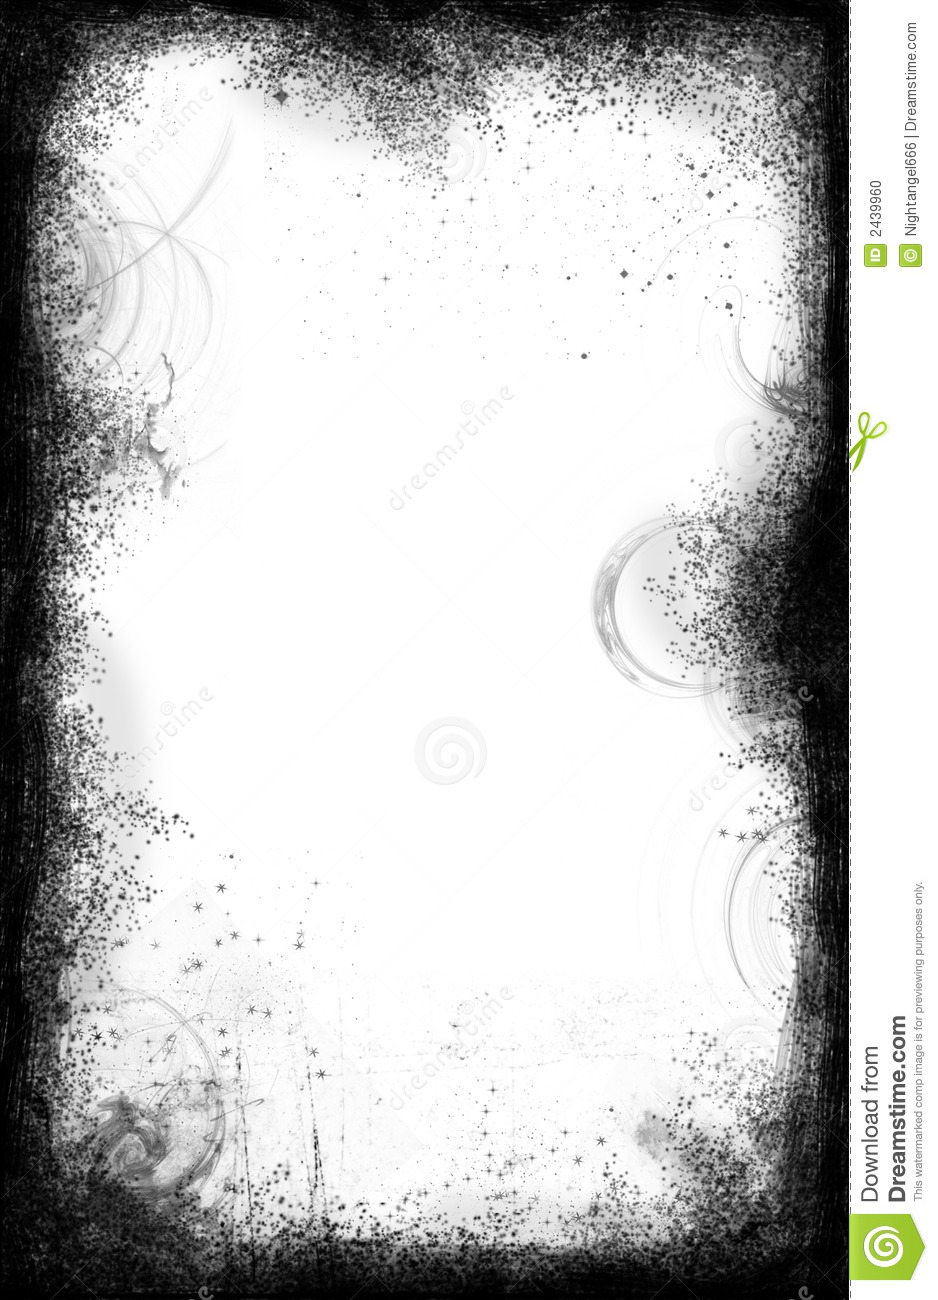 Grunge Border And Frame Stock Photo - Image: 2439960